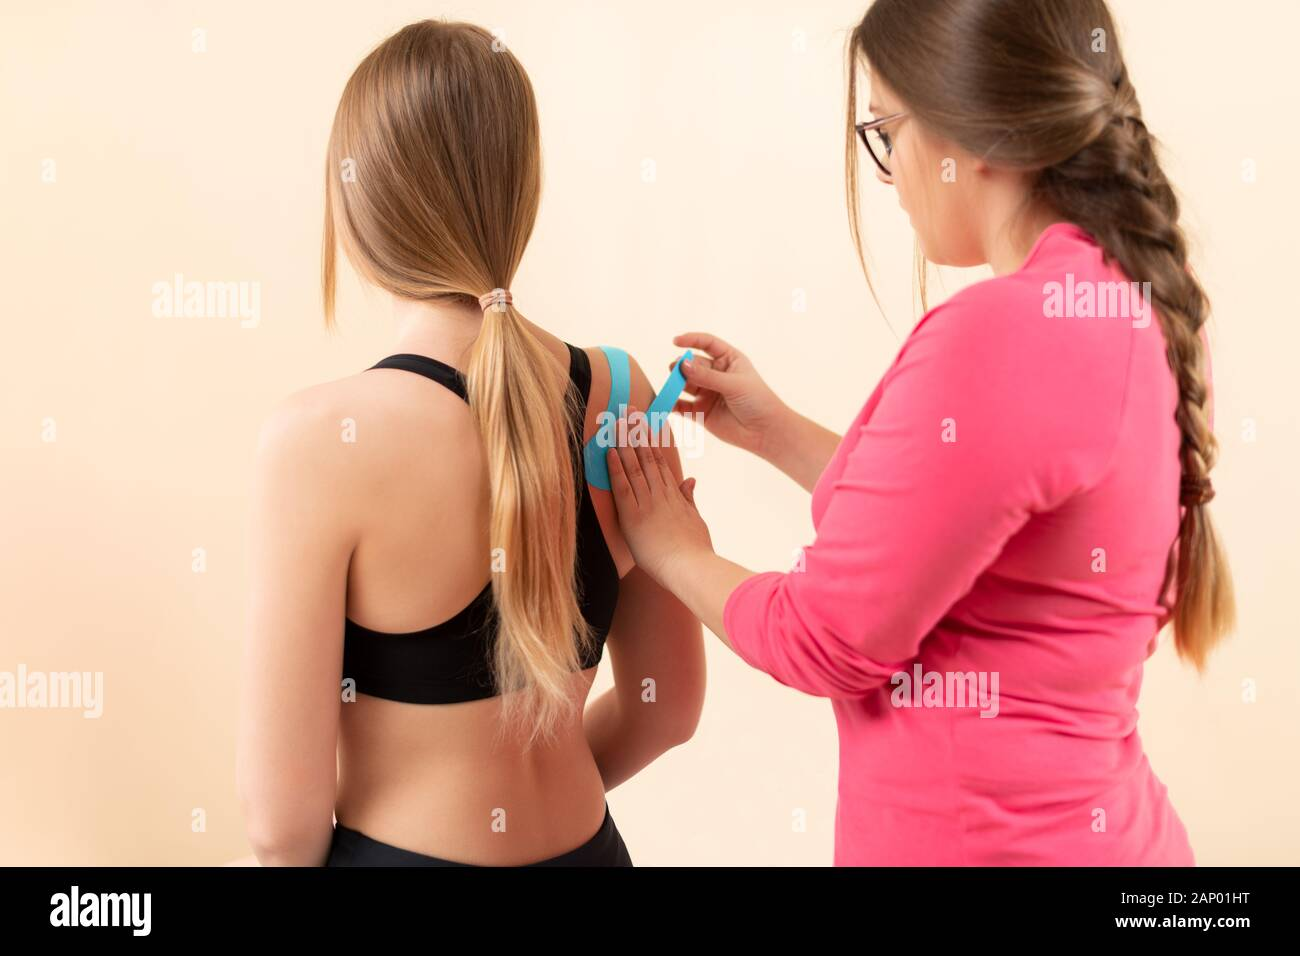 Physical therapist applying kinesio tape on female patient's shoulder. Kinesiology, physical therapy, rehabilitation concept. Rear view. Stock Photo